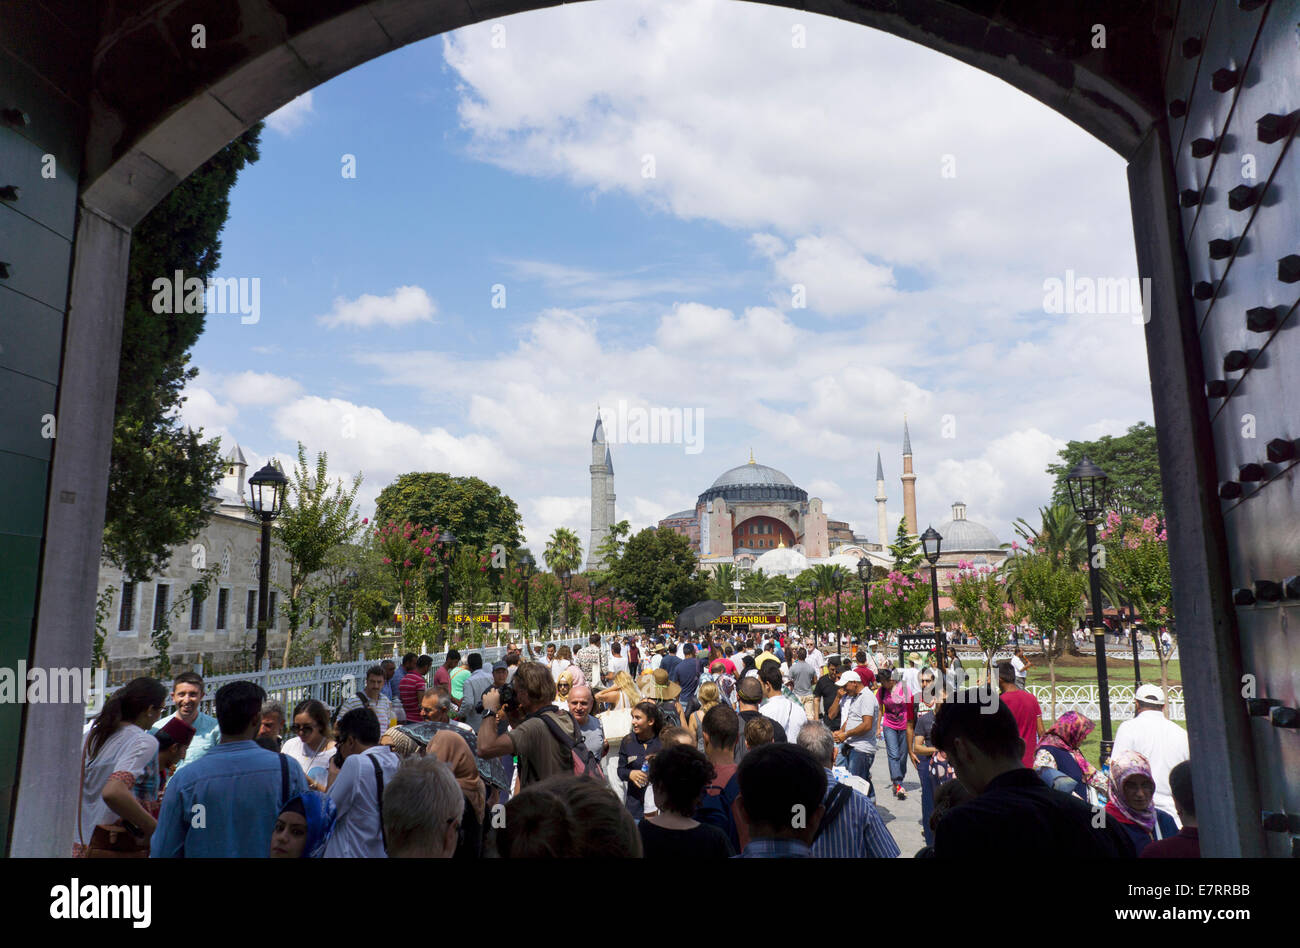 Istanbul, Turkey - August 3, 2014: Visitors near the Blue Mosque in Istanbul. The city receives over 10 million - Stock Image